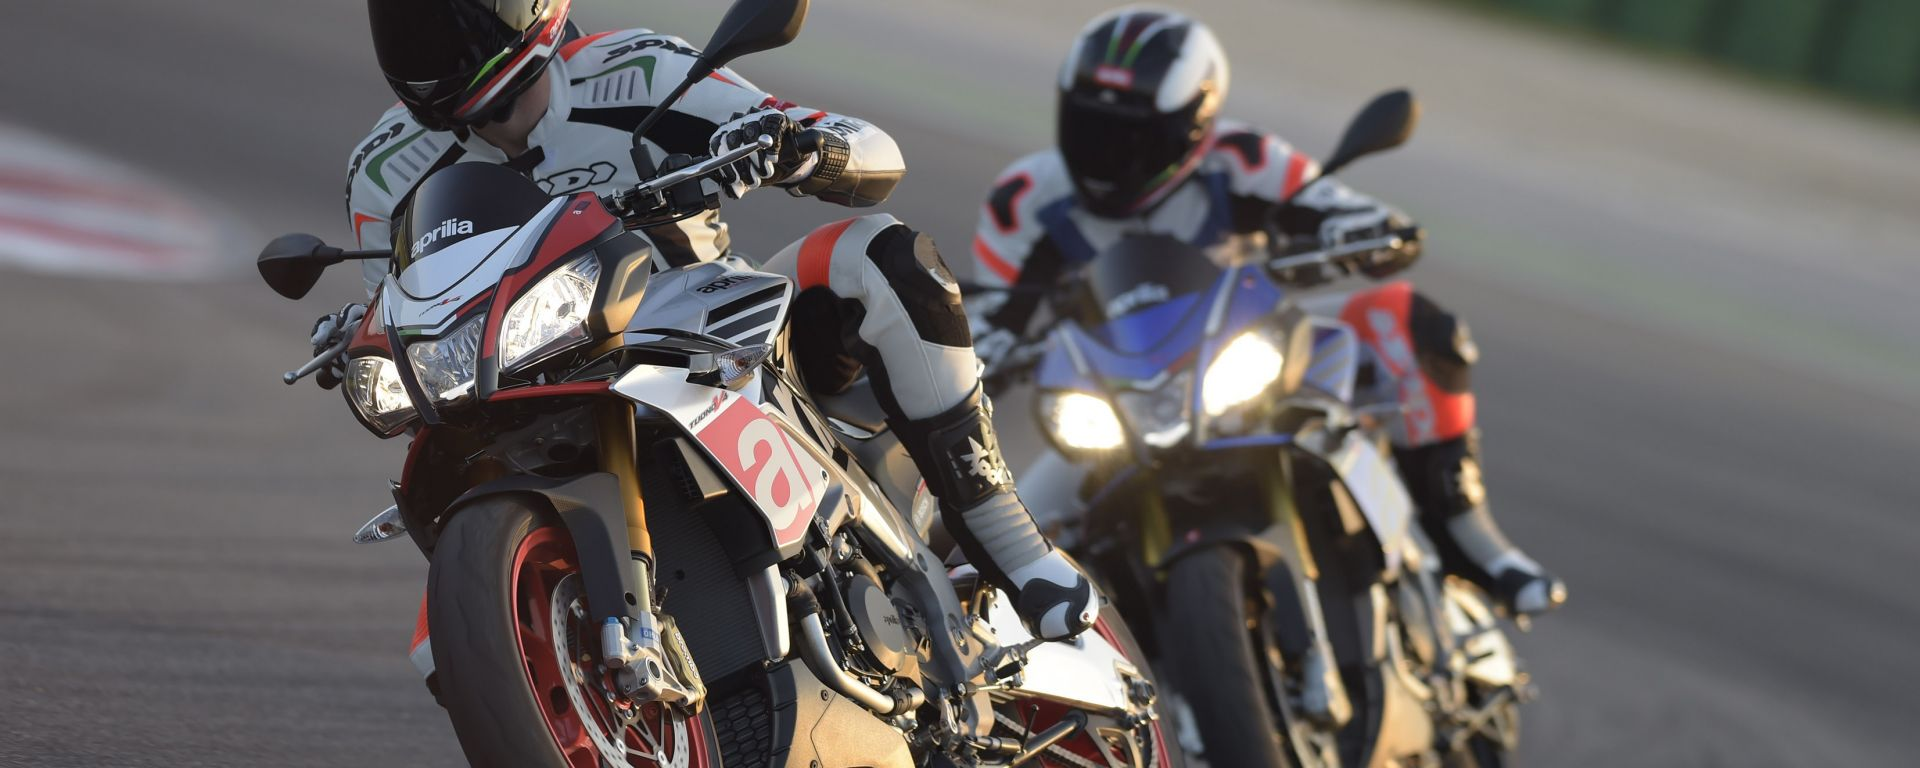 Aprilia Test Ride on Track